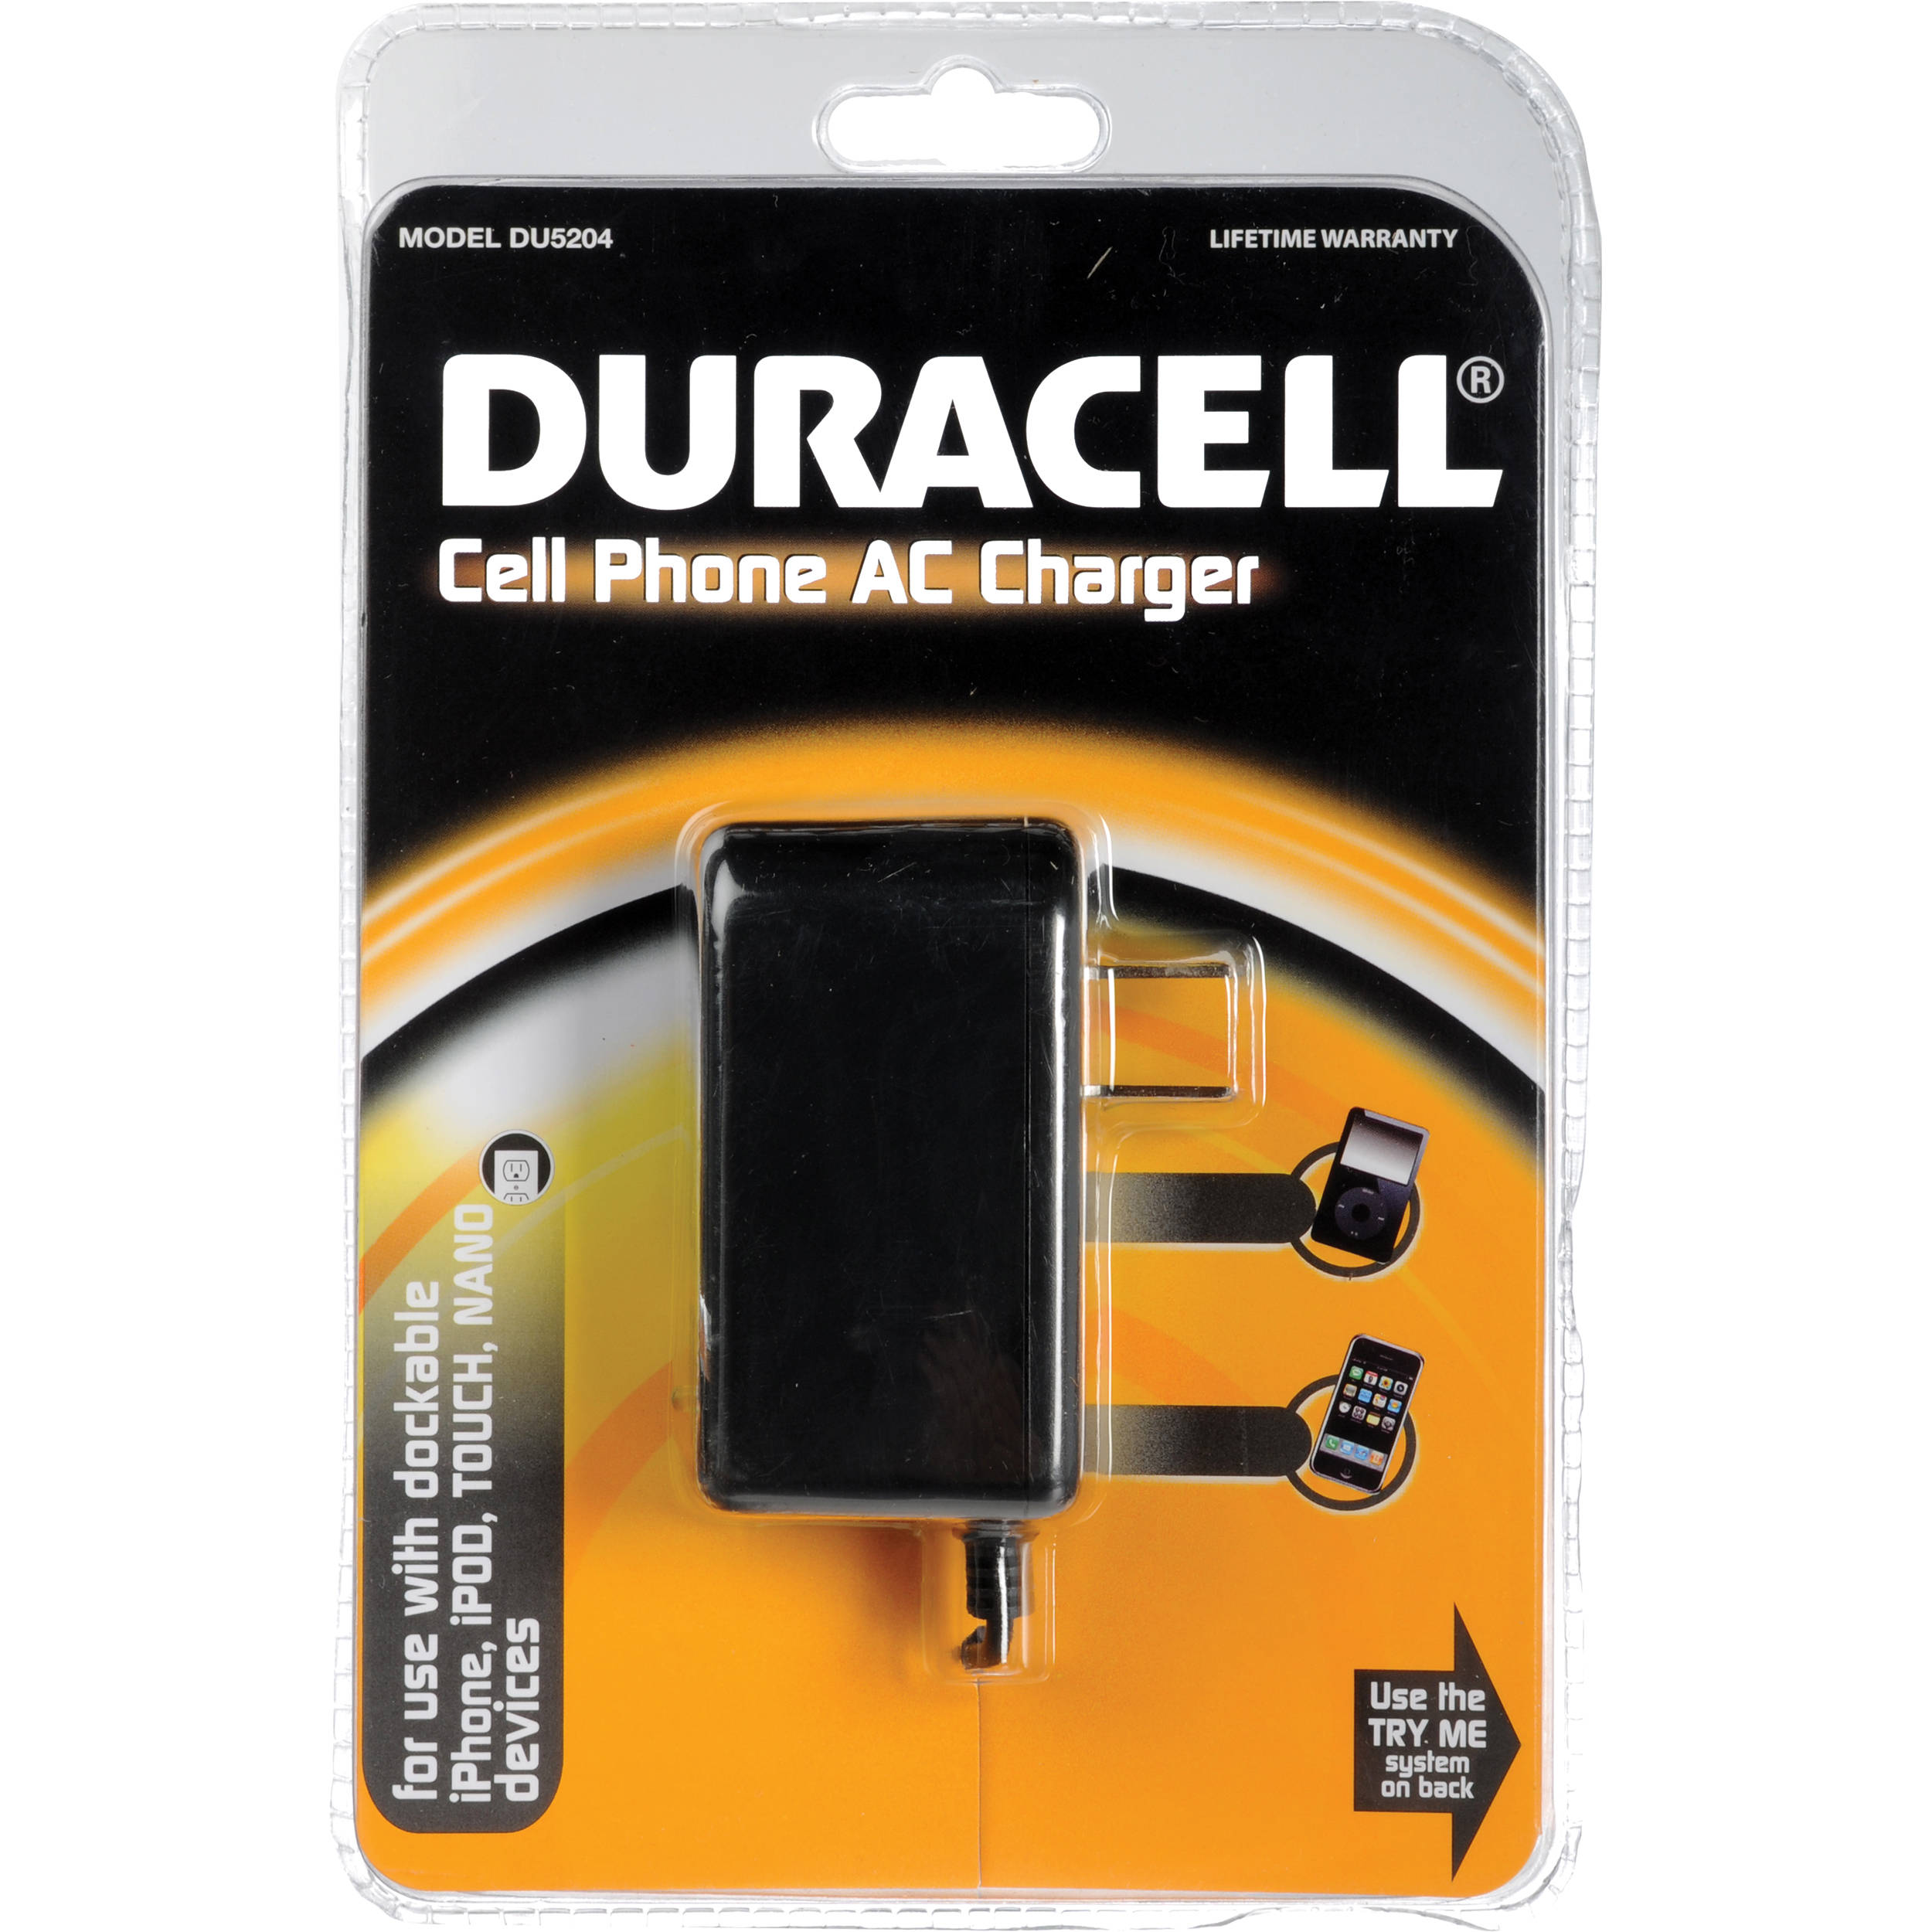 Duracell phone charger cutting disc 125mm